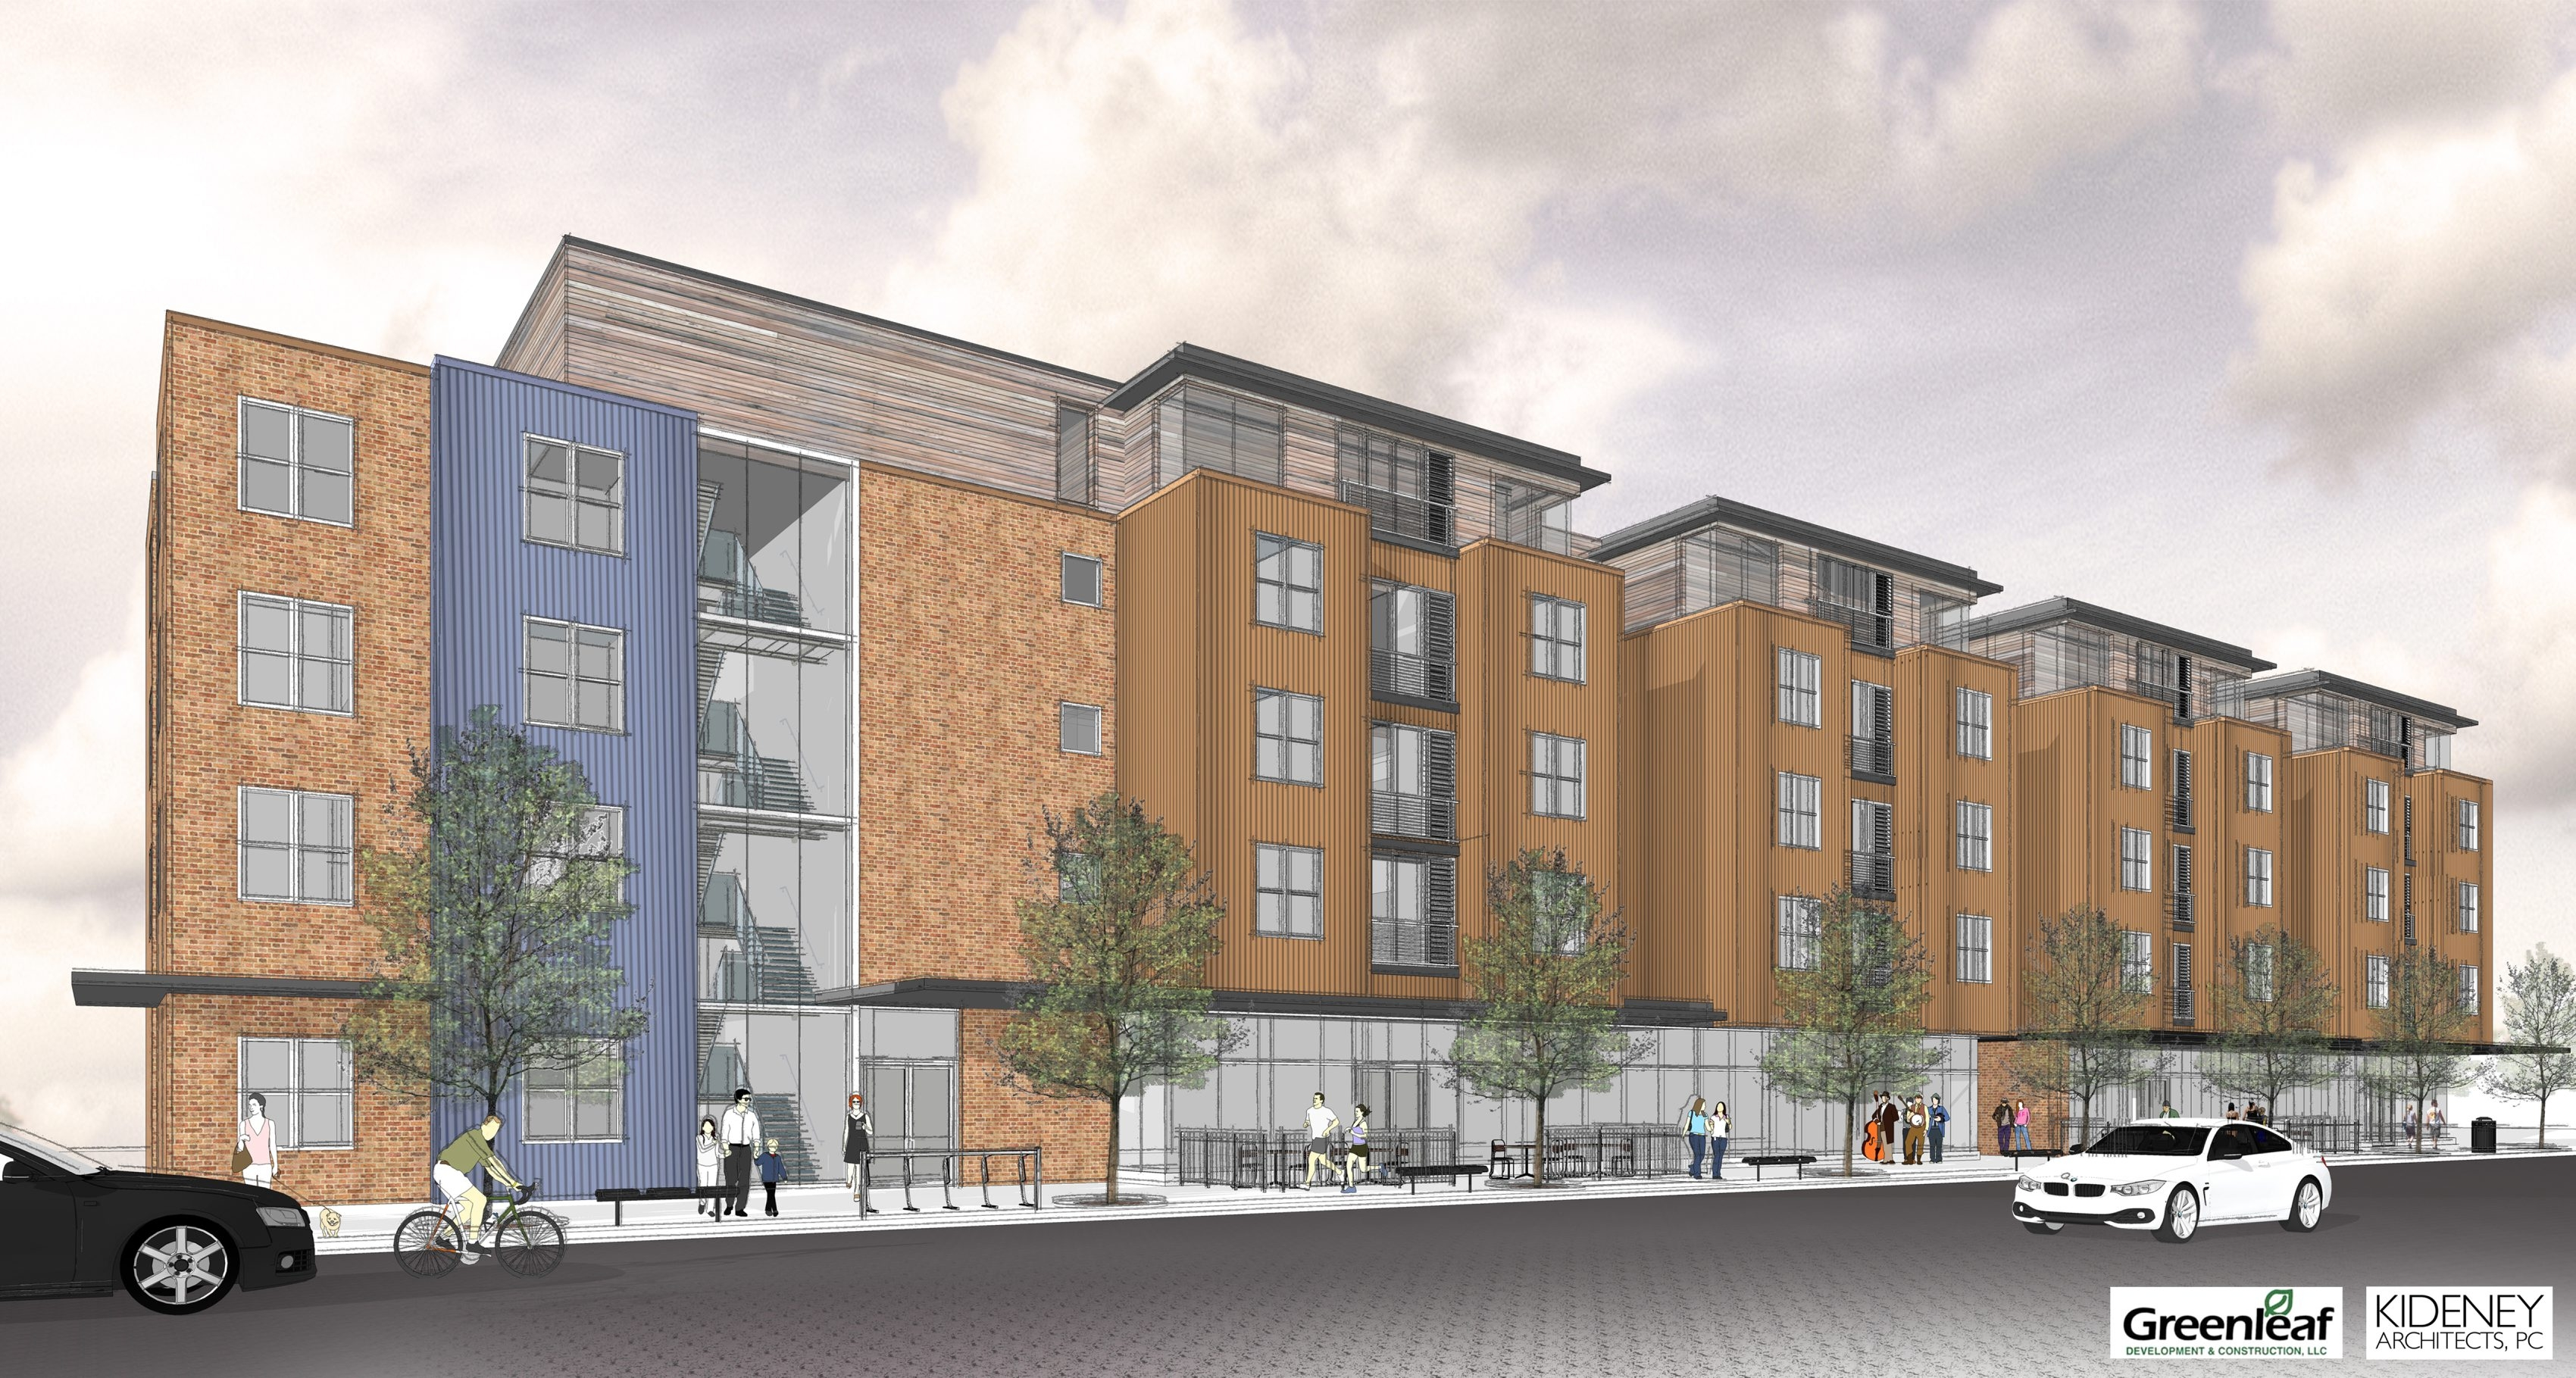 Design above  shows Greenleaf student housing at Grant Street and Rockwell Road. The proposed mixed-use development will include neighborhood retail and residential space to accommodate 300 students in three and four-bedroom apartments.